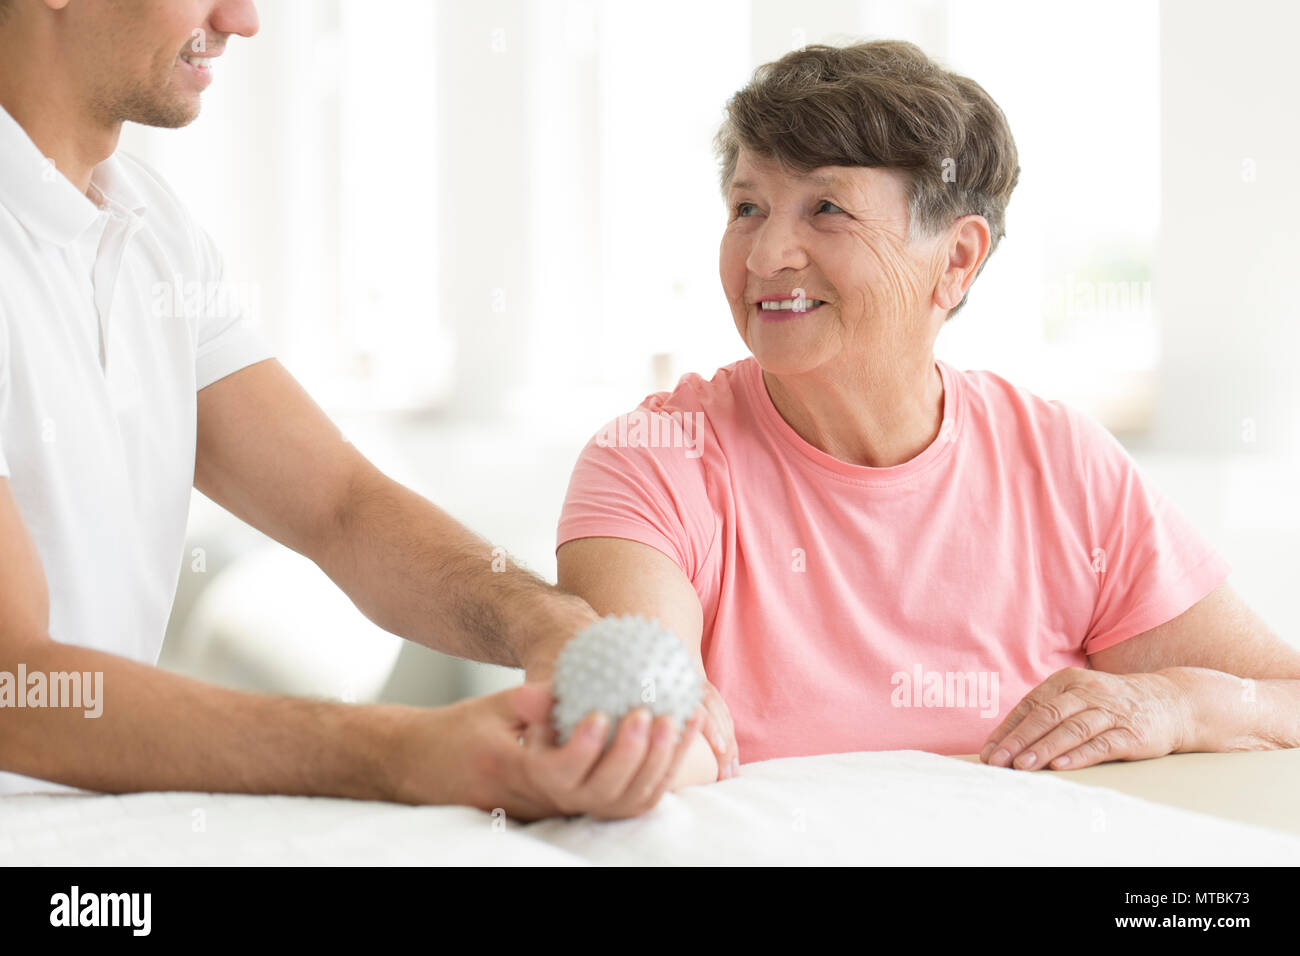 Hospital patient holding a grey, spiked rehabilitation ball in her right hand during physiotherapy - Stock Image